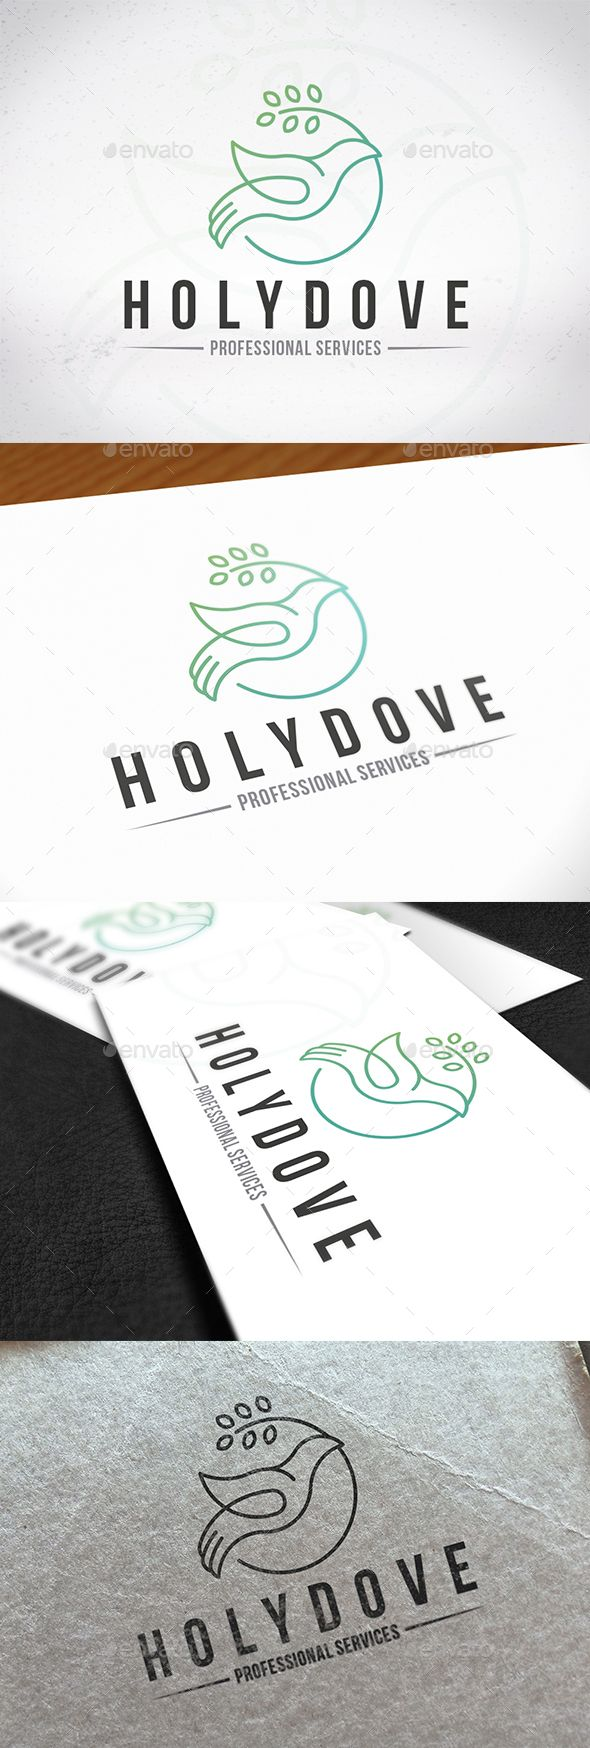 Holy Spirit Dove Logo Template PSD, Vector EPS, AI Illustrator